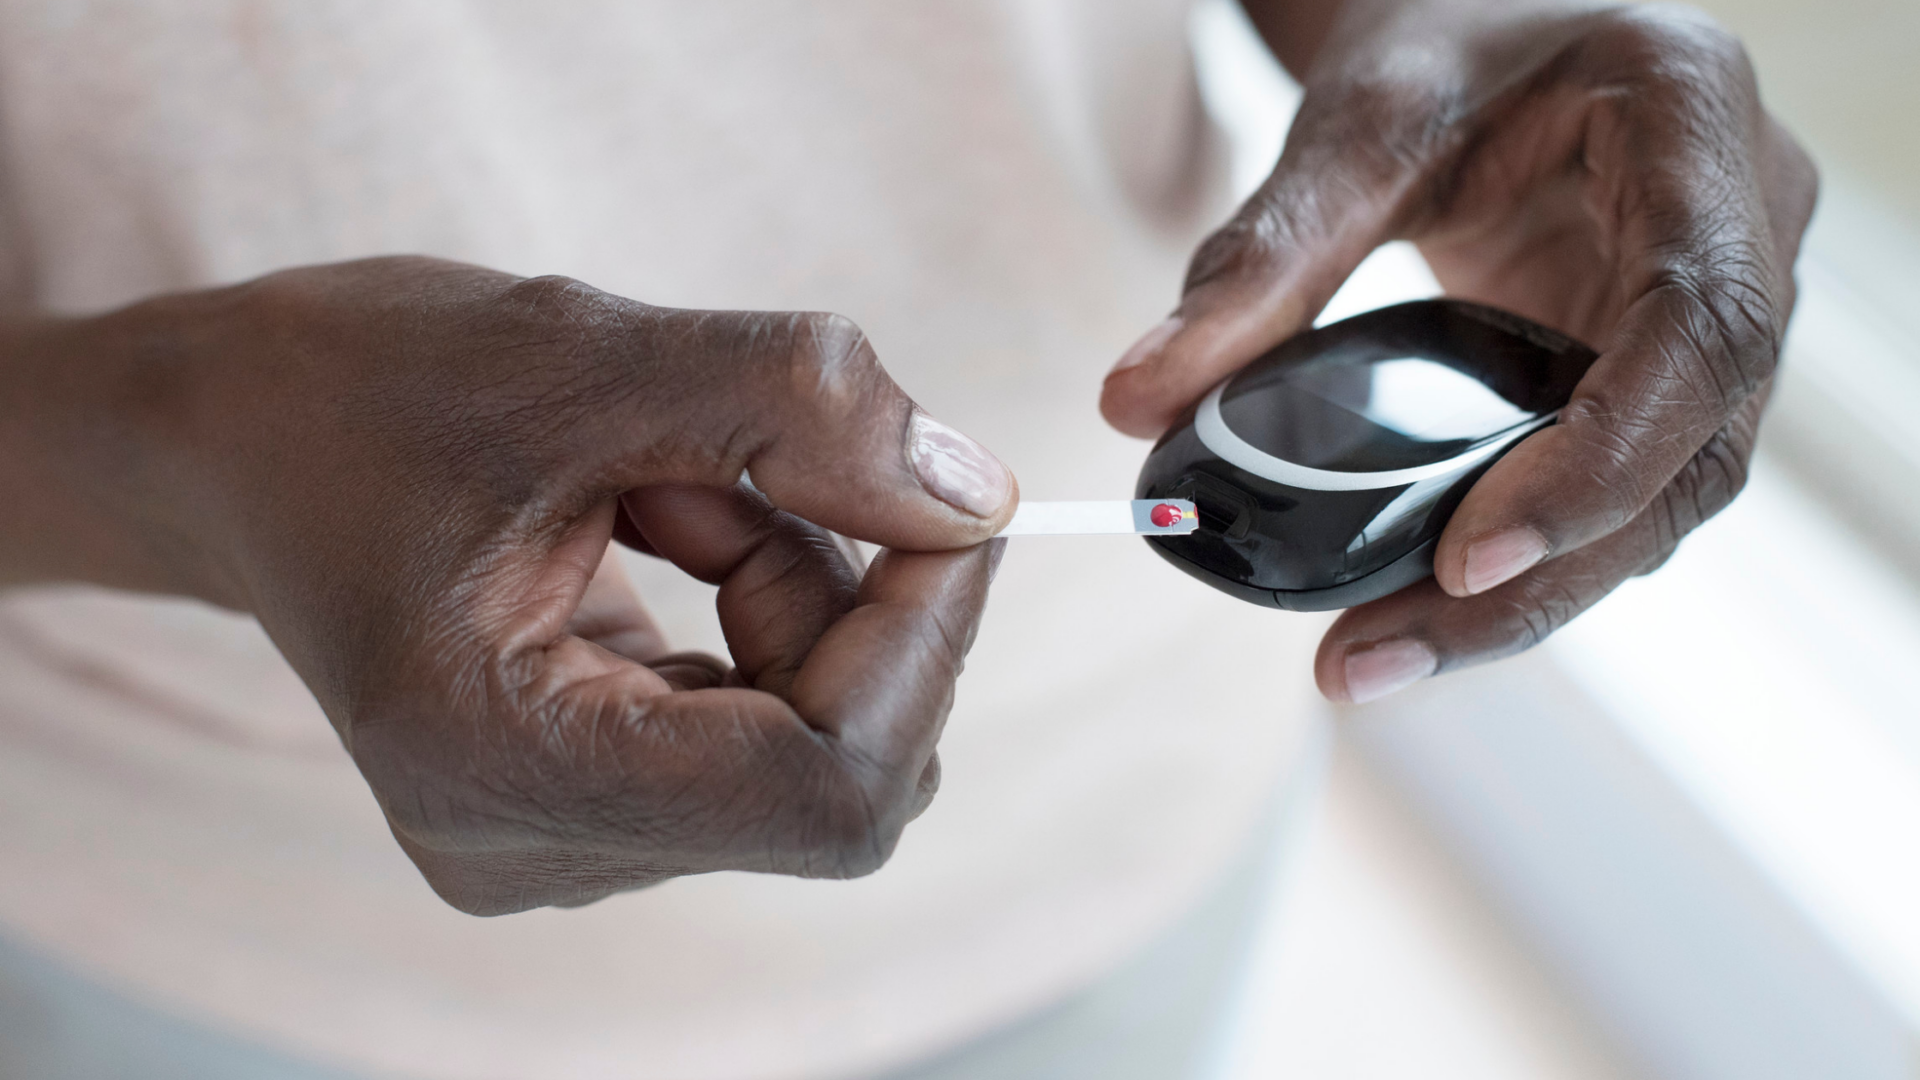 7 Facts You Should Know About Type 2 Diabetes